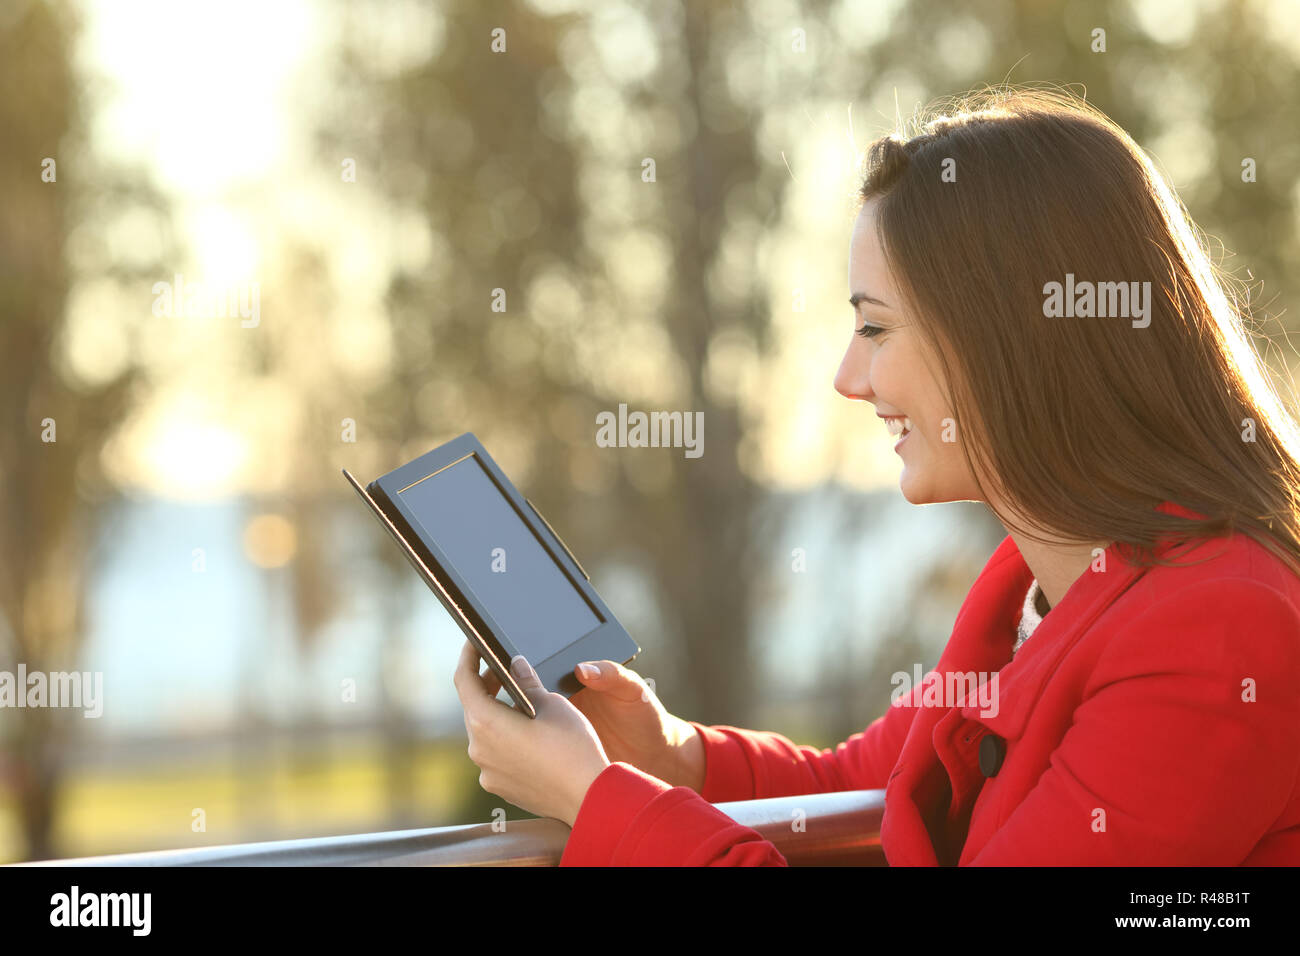 Woman reading ebook at sunset - Stock Image